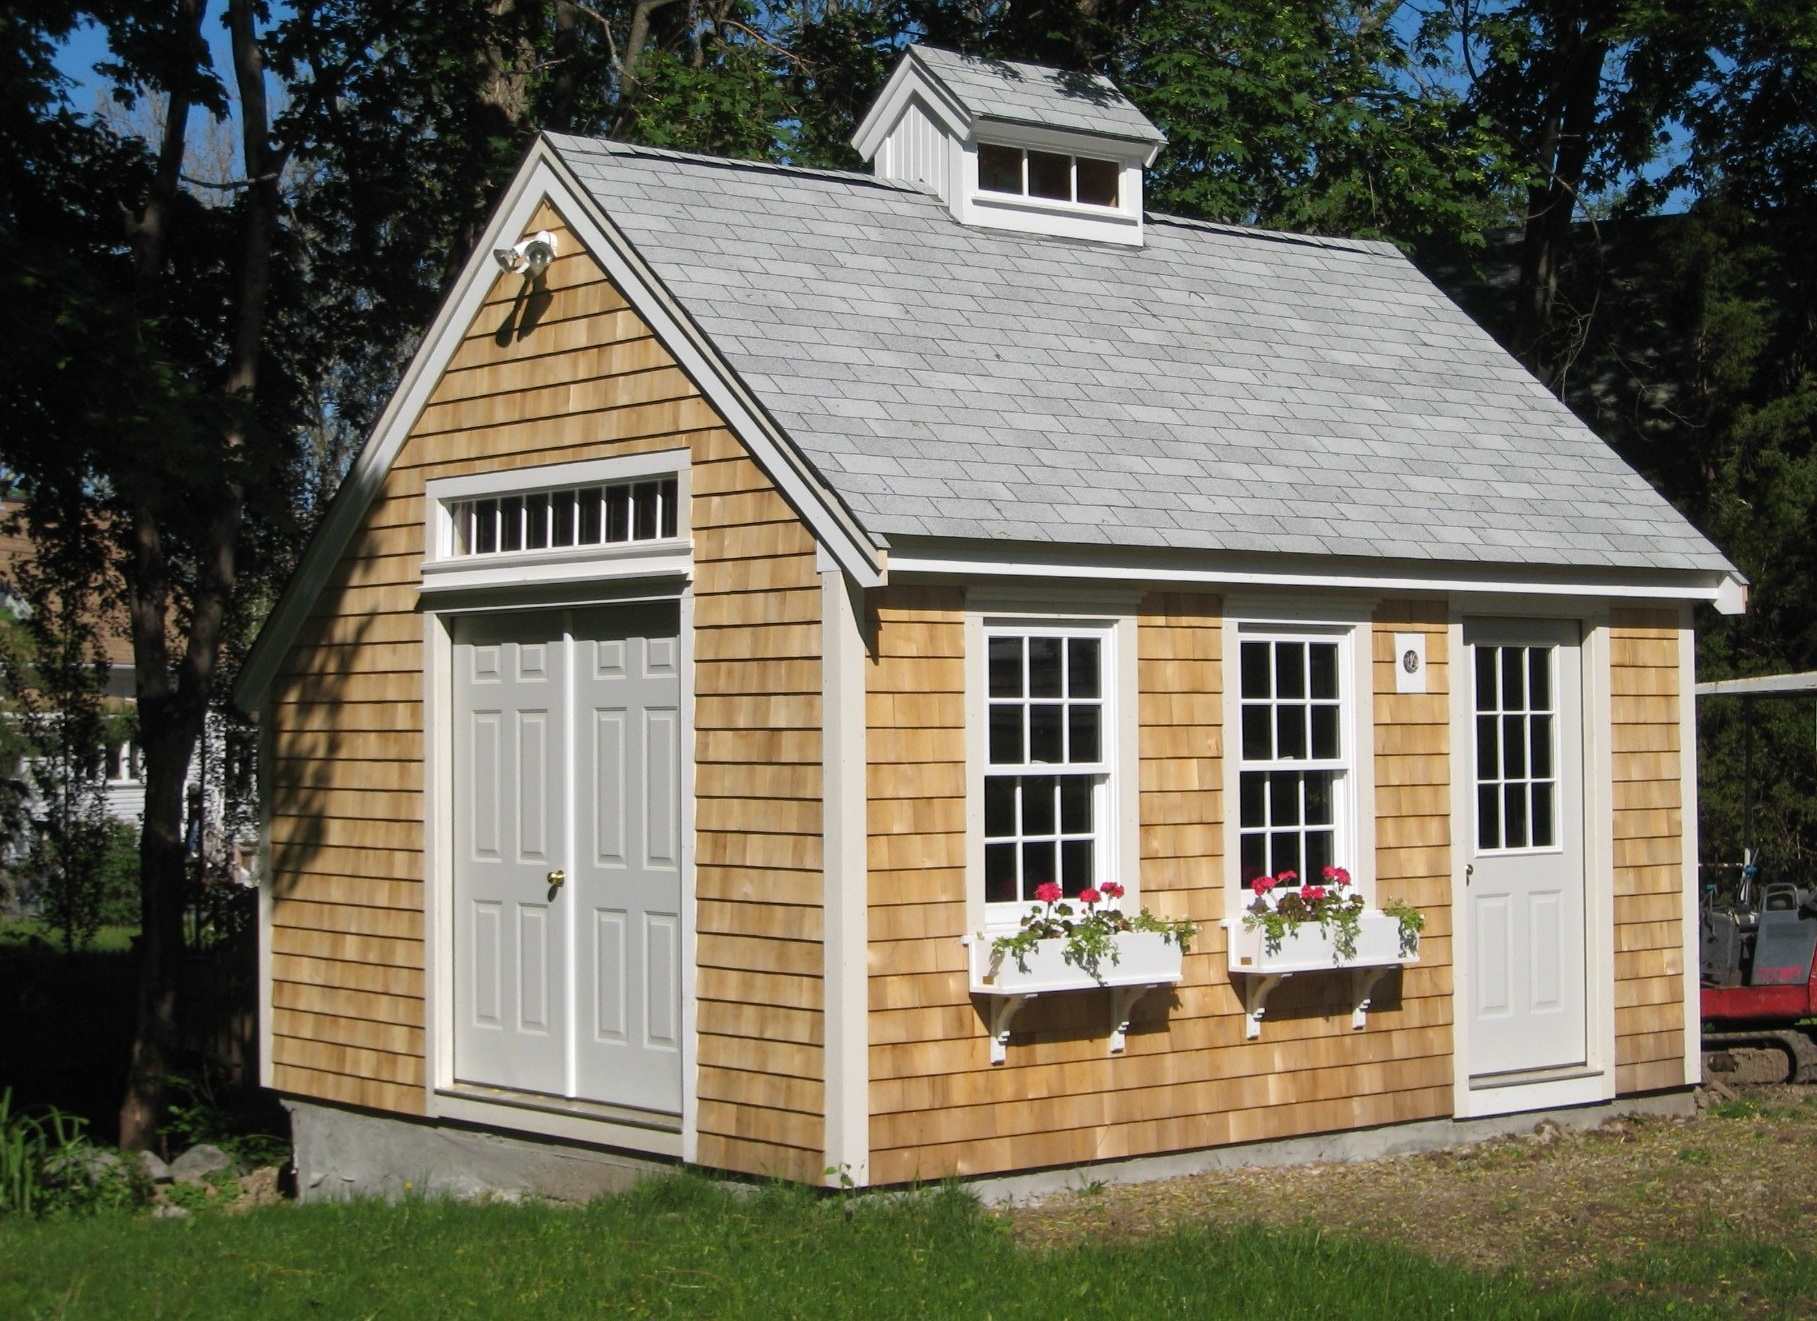 Ideas additionally Barn Shed Plans With Loft moreover Back Yard Garden